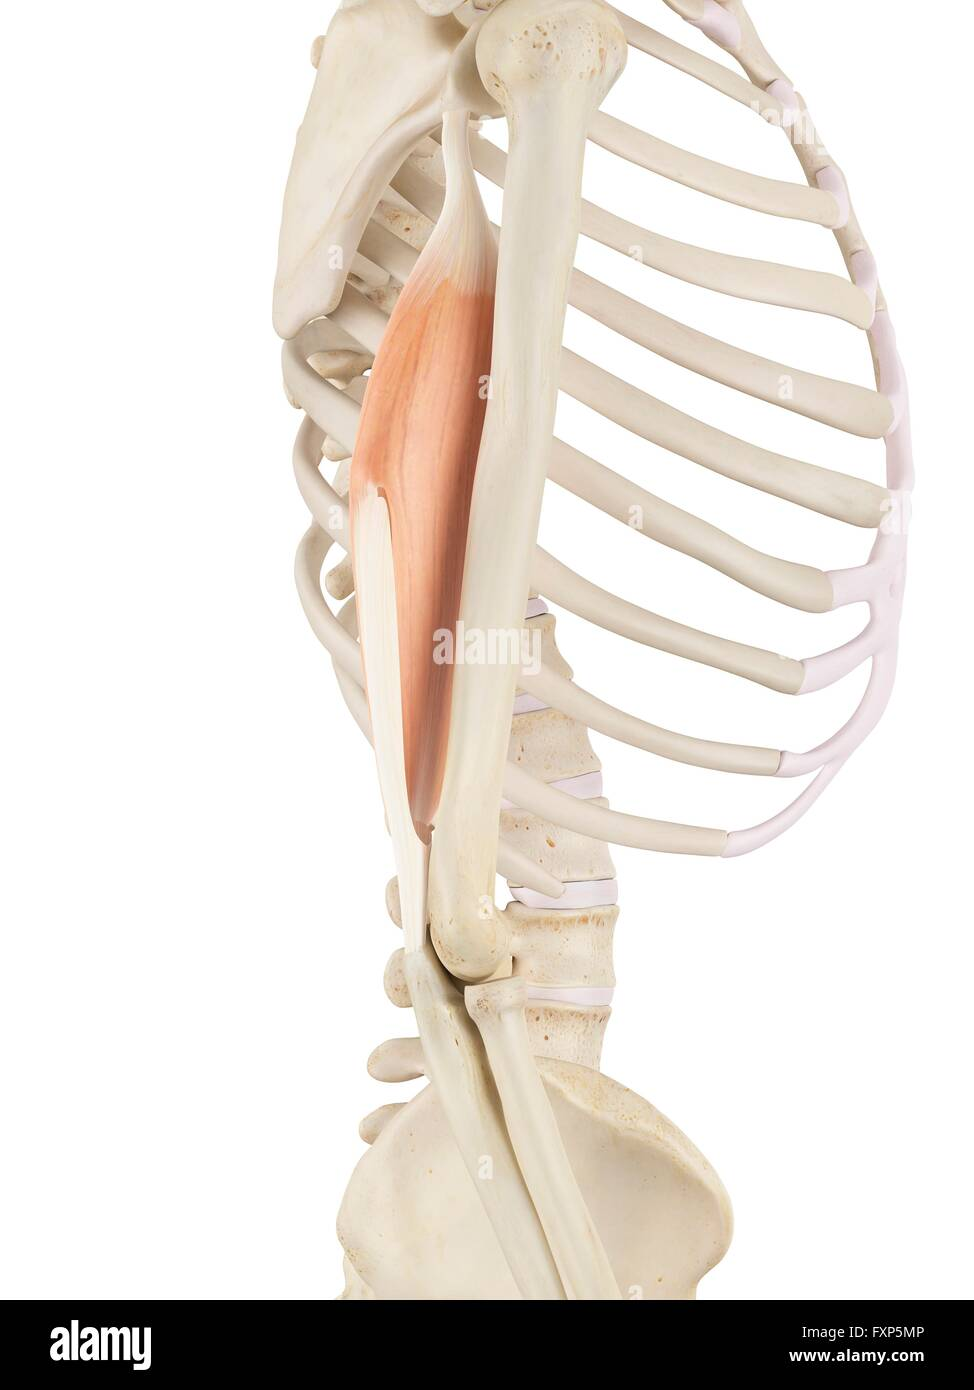 Upper Arm Muscles Stock Photos & Upper Arm Muscles Stock Images - Alamy